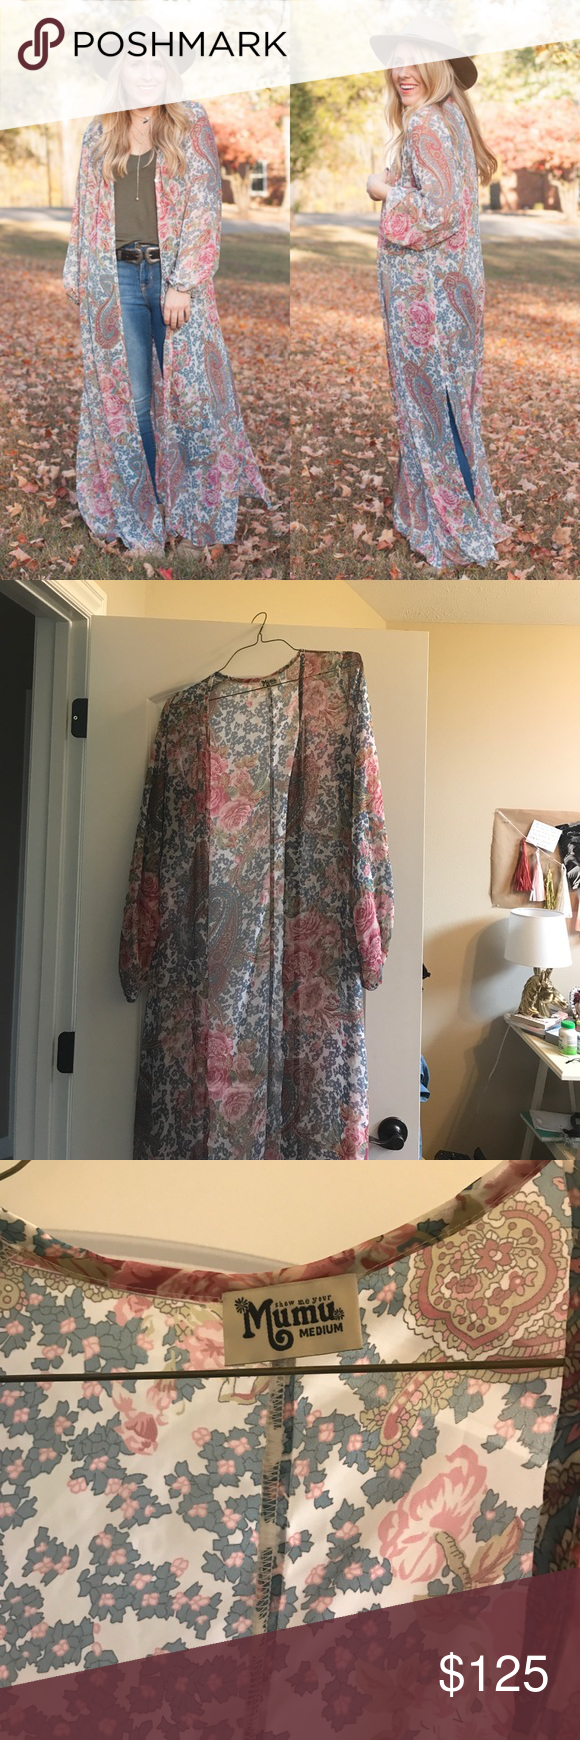 SMYM DRAGONFLY CAPE IN GREY GARDENS In perfect worn condition! Getting rid of some of my fav Mumu pieces to pay for LDR plane tickets 🙈 Doubles as Cape or Button up Maxi Show Me Your MuMu Sweaters Cardigans